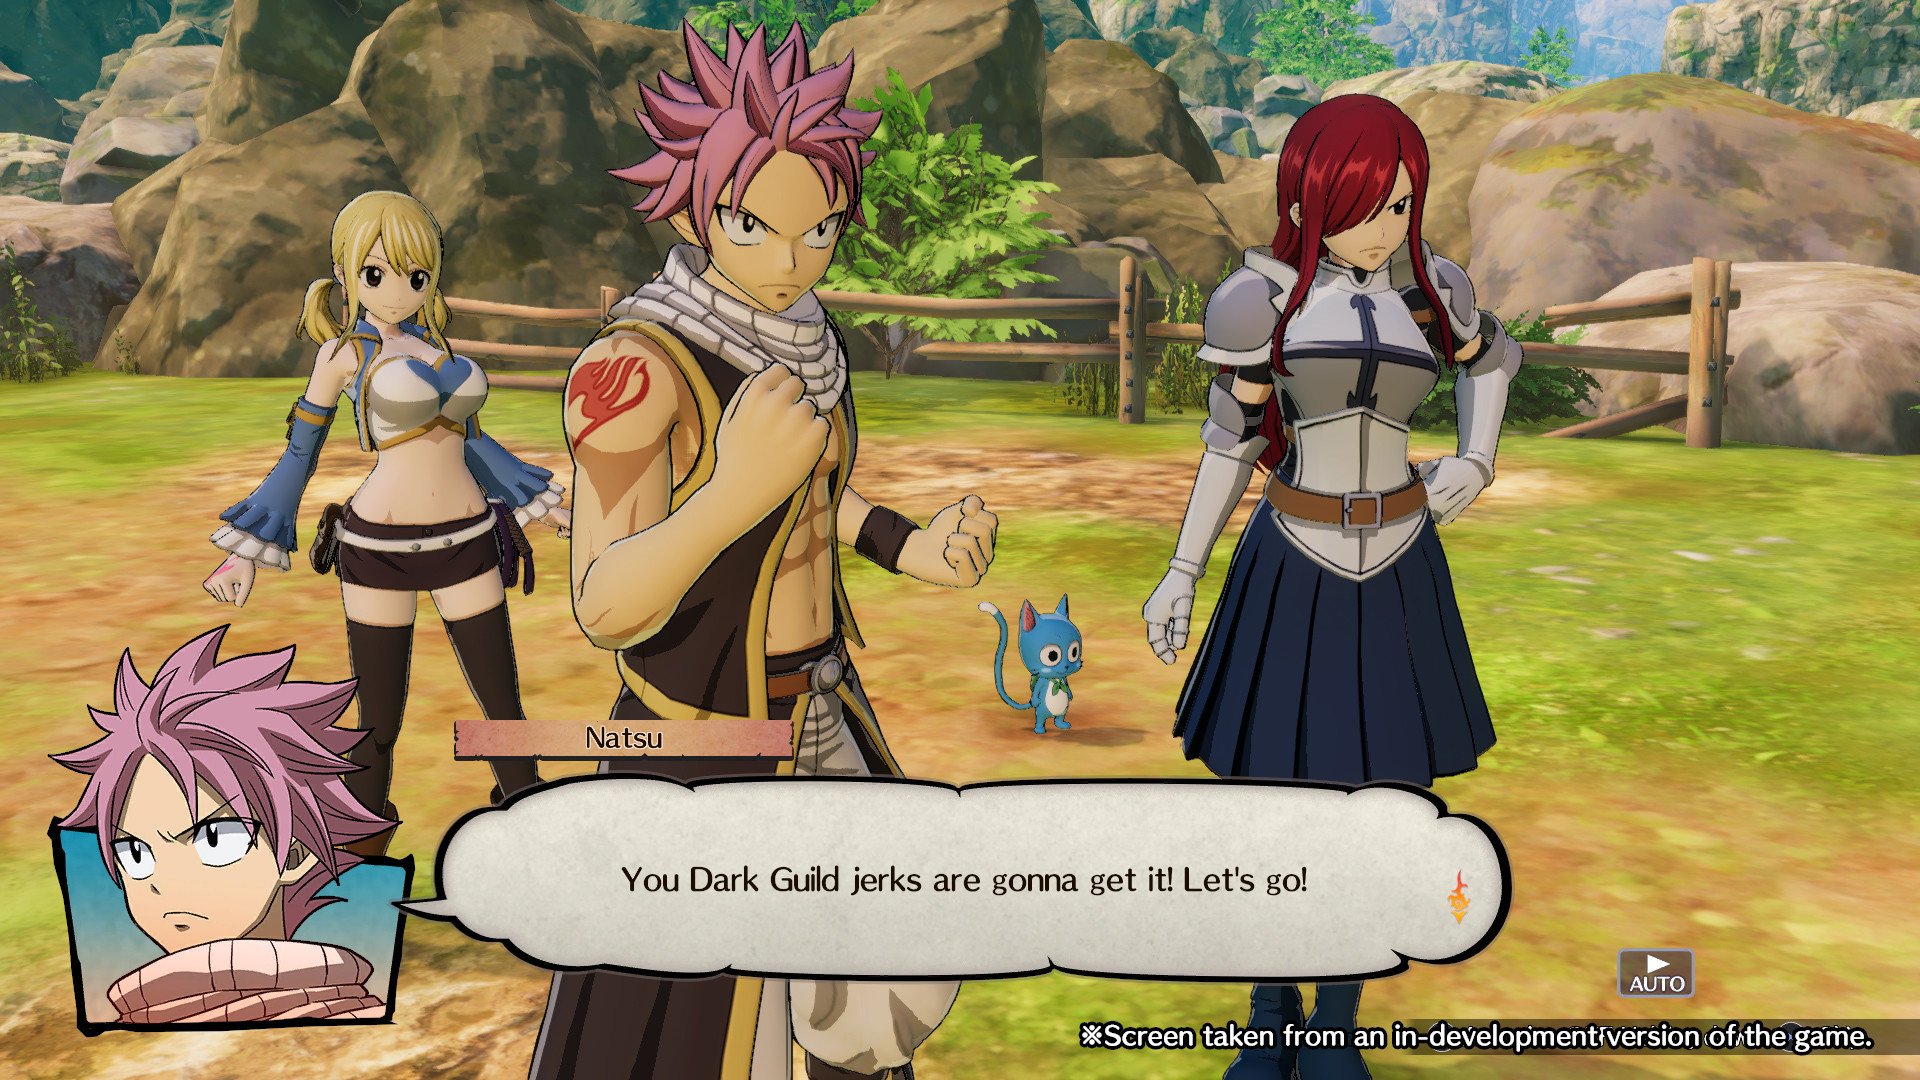 Pre-purchase FAIRY TAIL on Steam